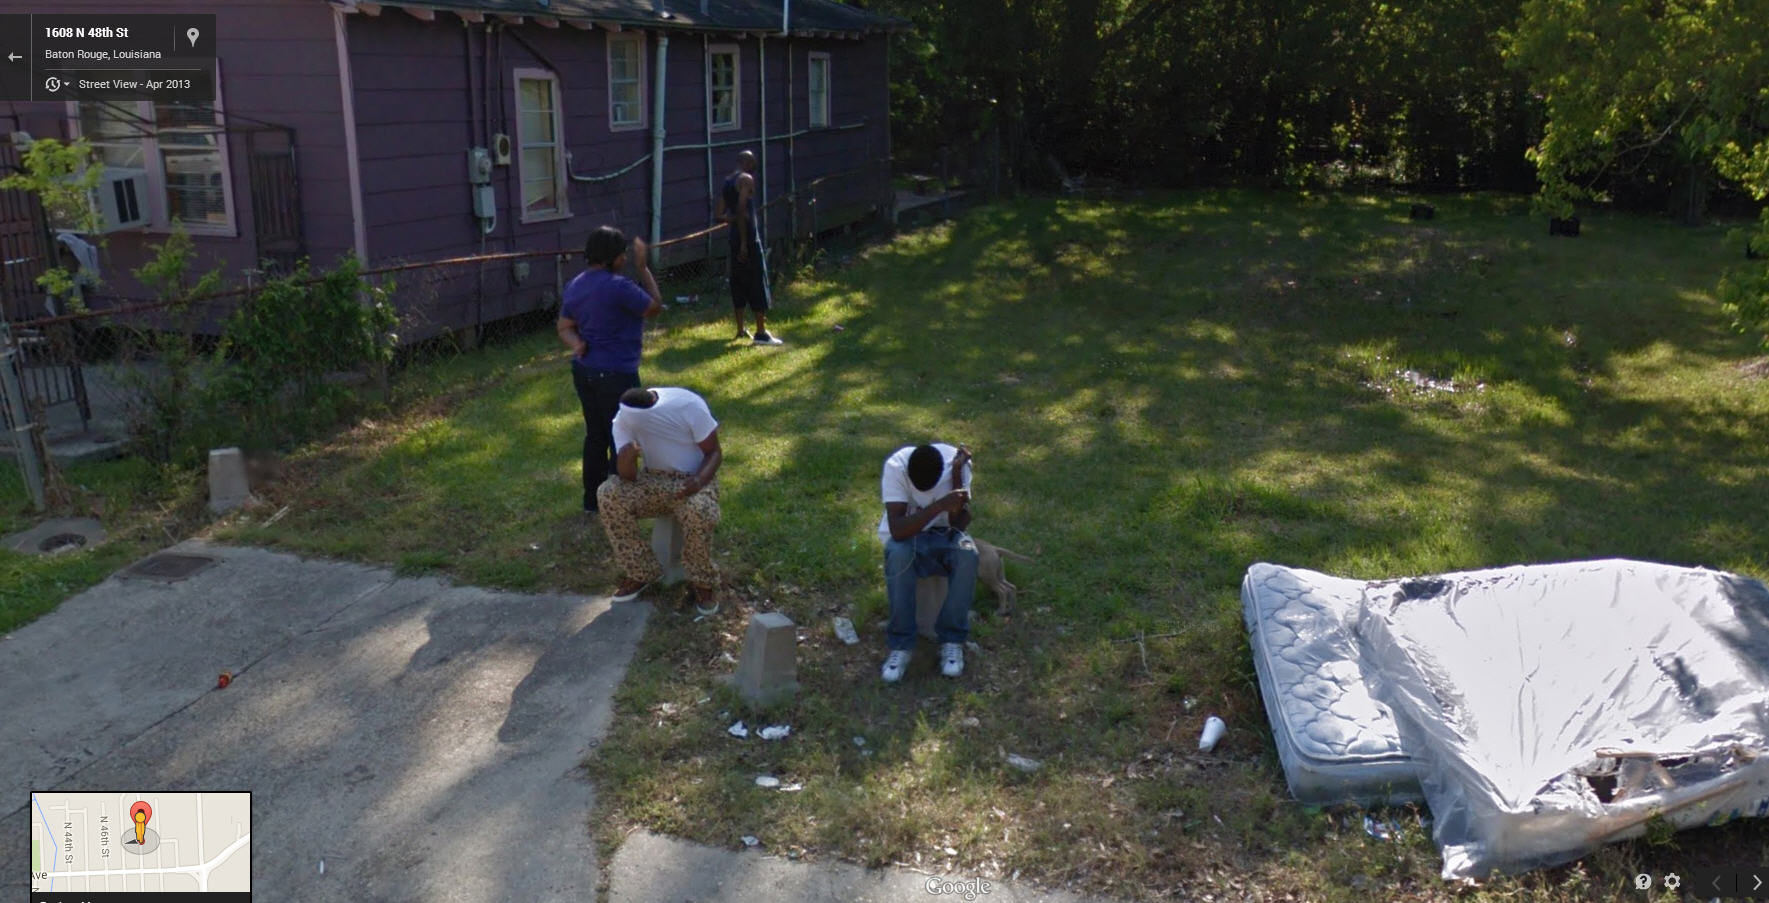 These guys don't trust Google Street Views Blurring Technique